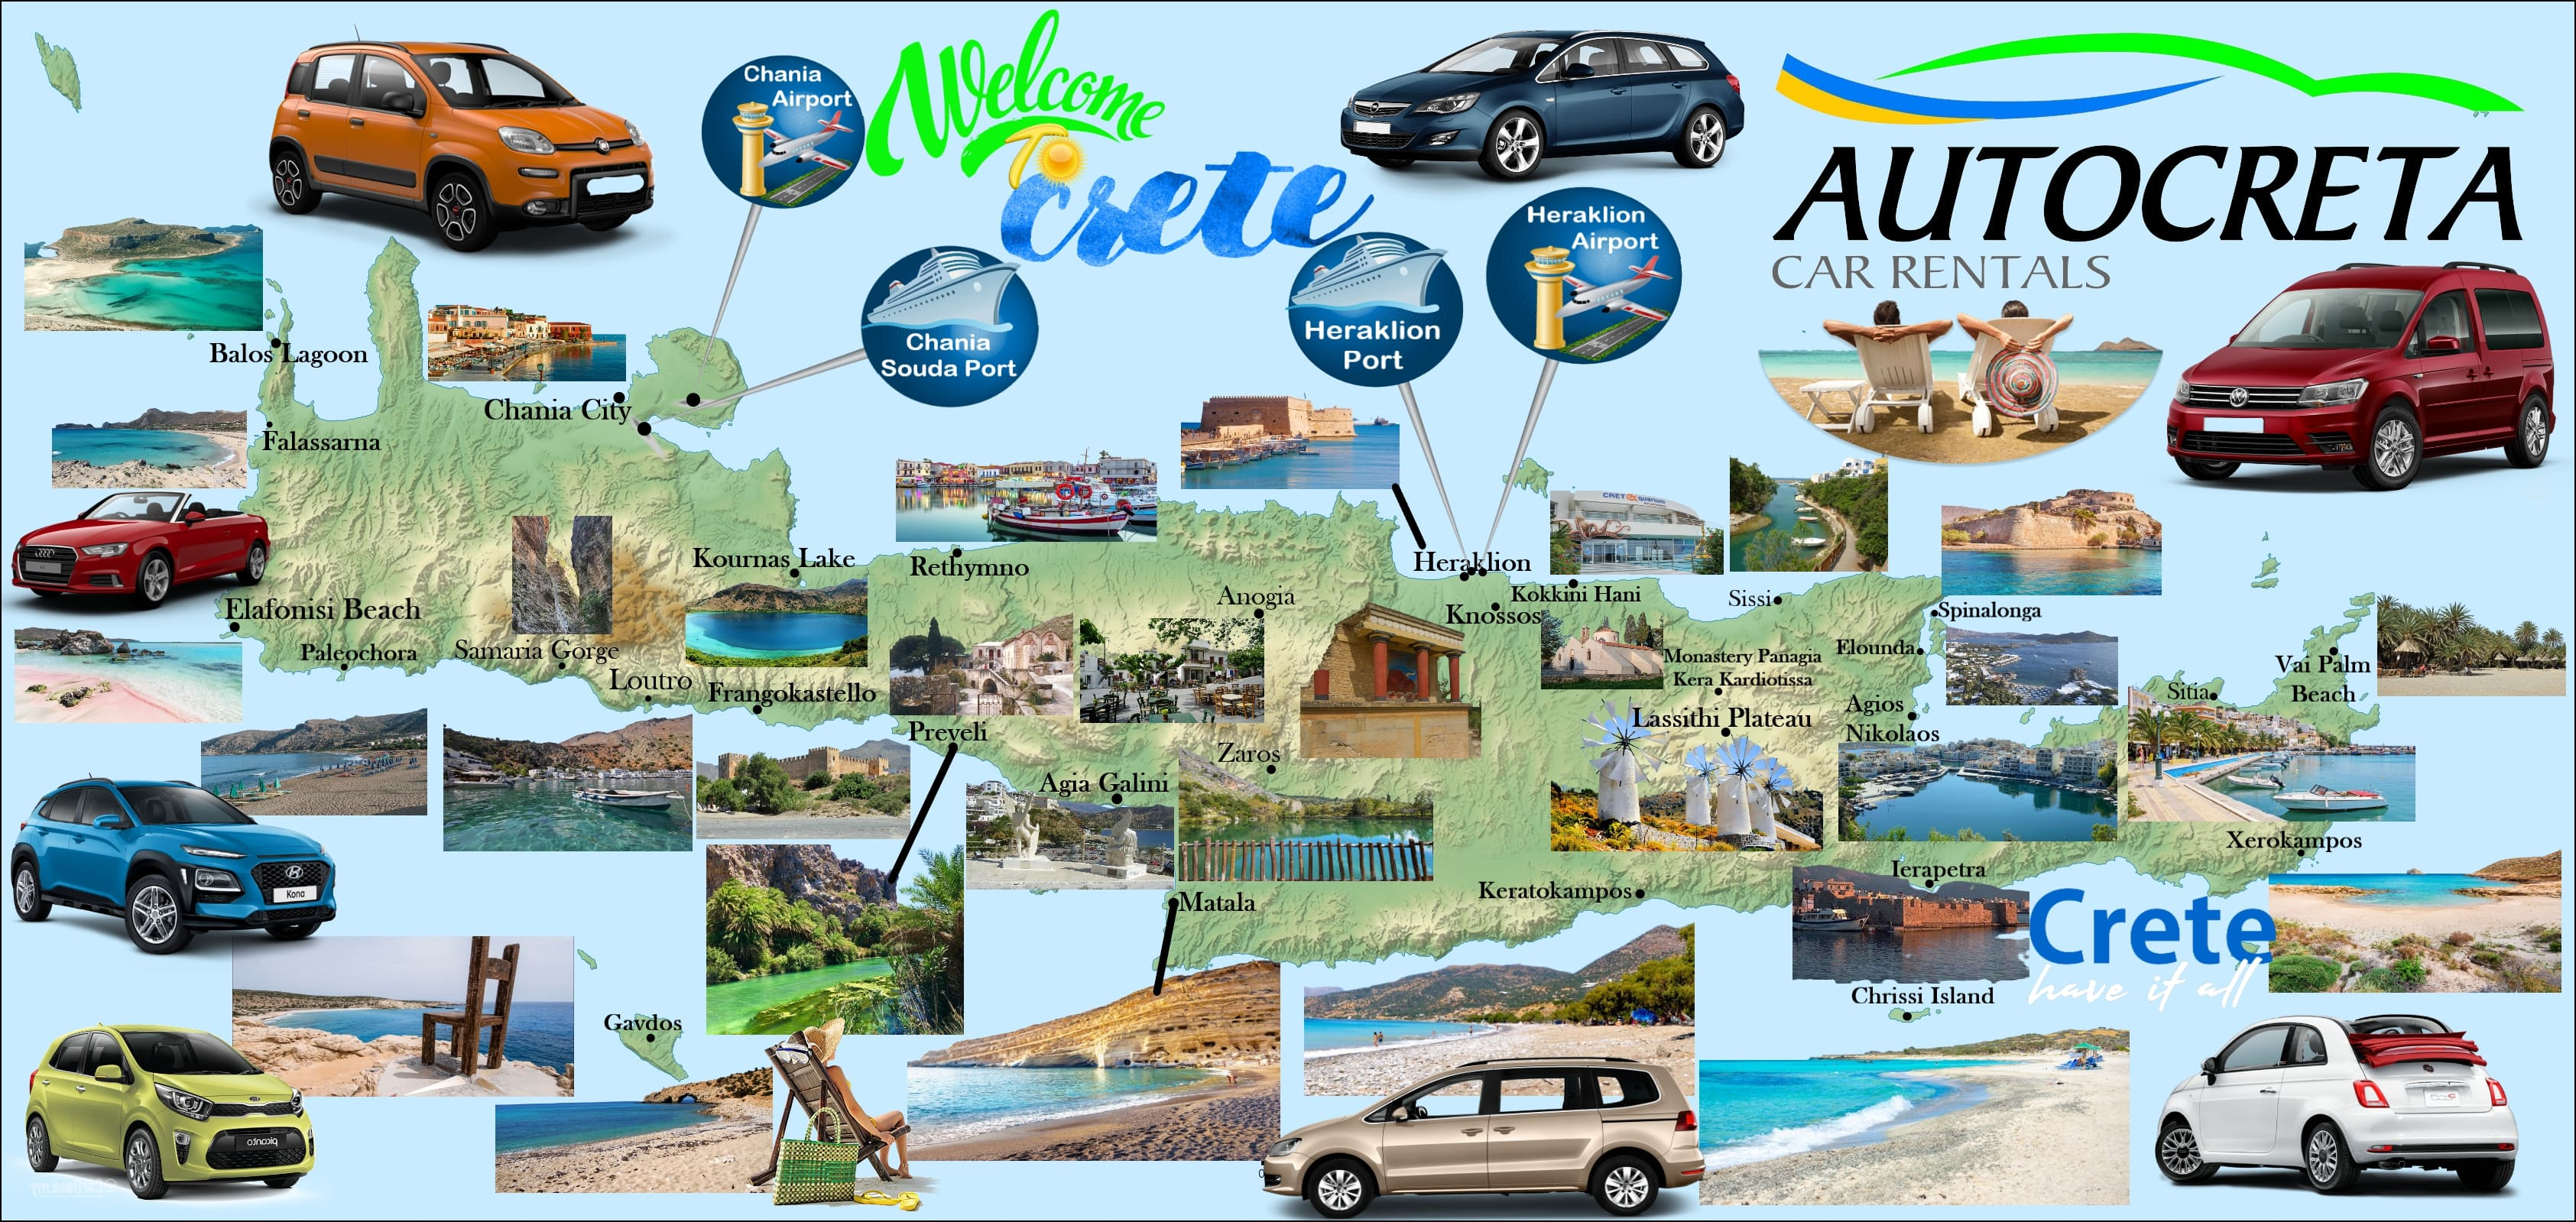 Map of Crete Autocreta Car Rentals